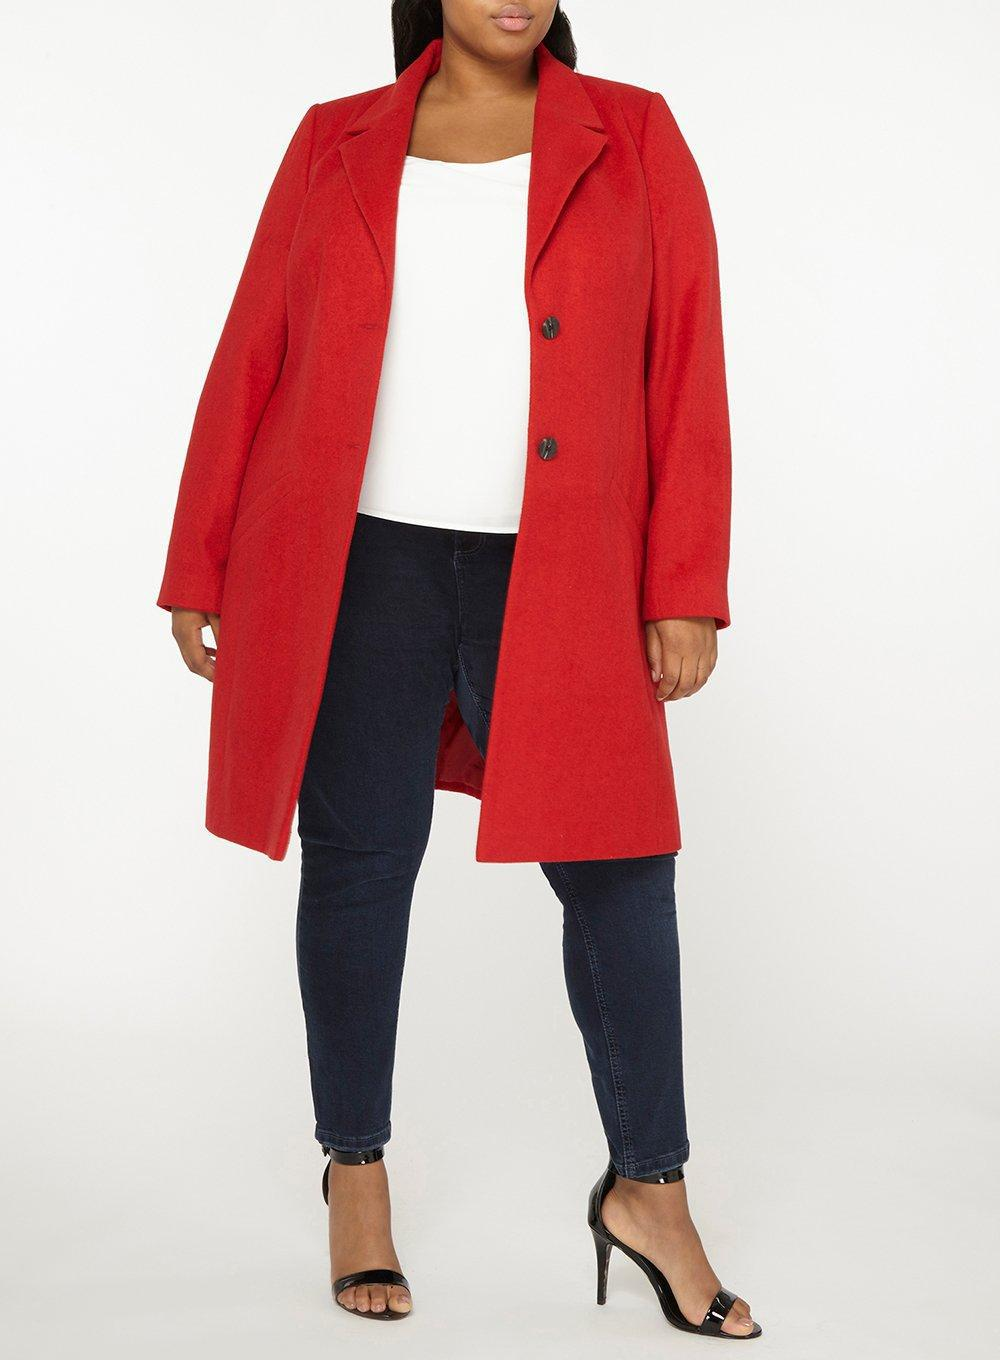 d02cbf65746 Dorothy Perkins - Dp Curve Red Duster Coat - Lyst. View fullscreen